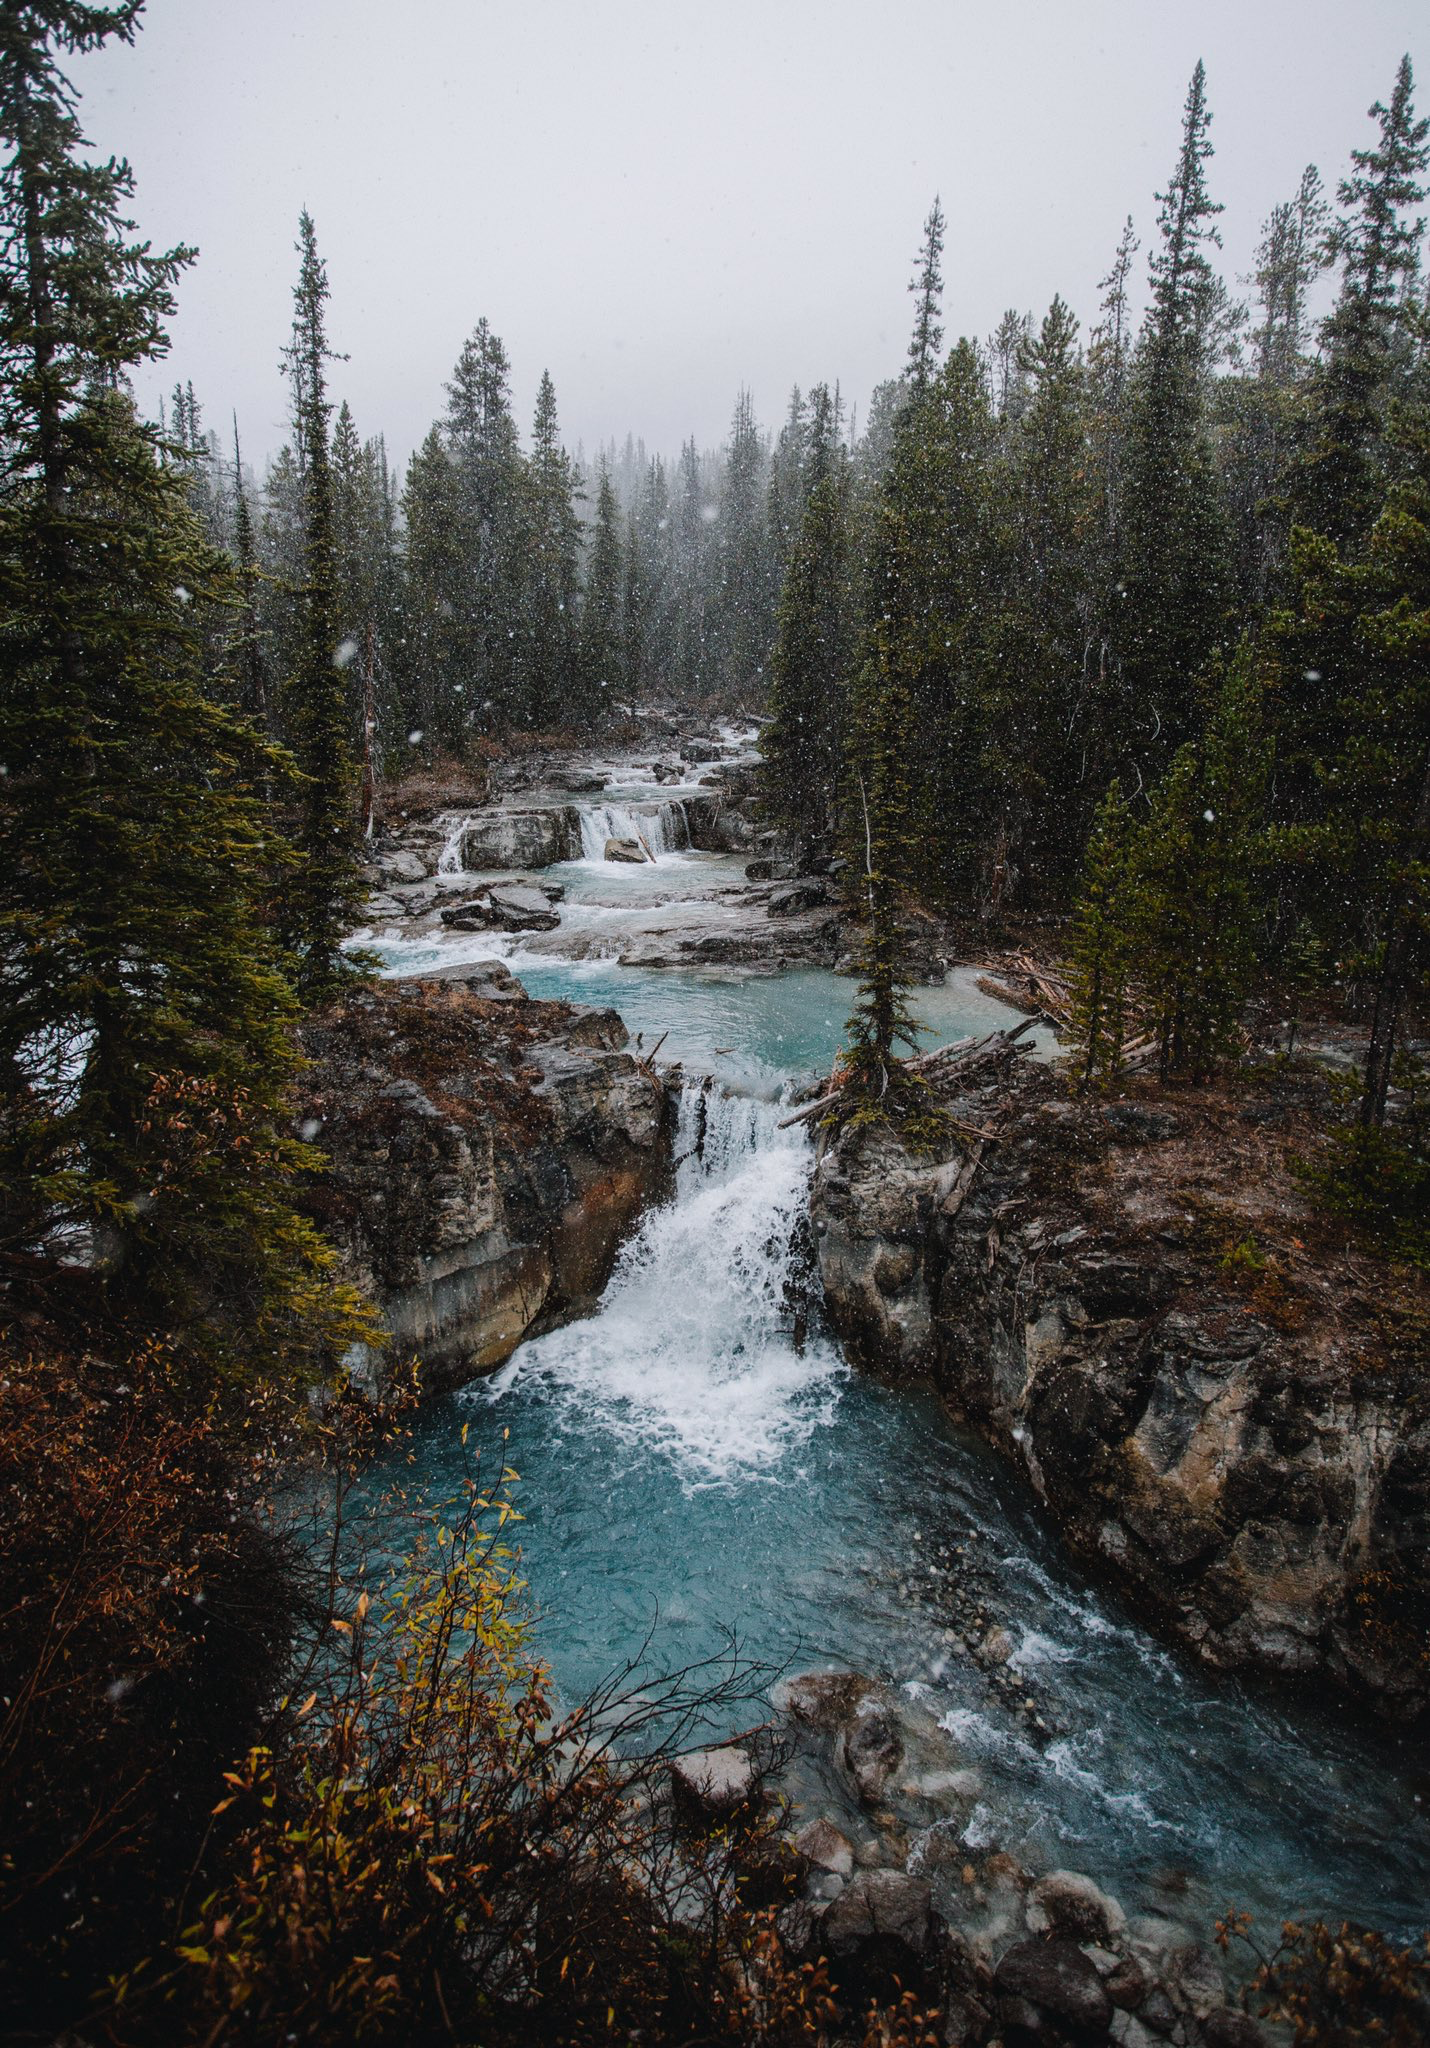 Pin by Haley Bass on • the great outdoors • | Nature